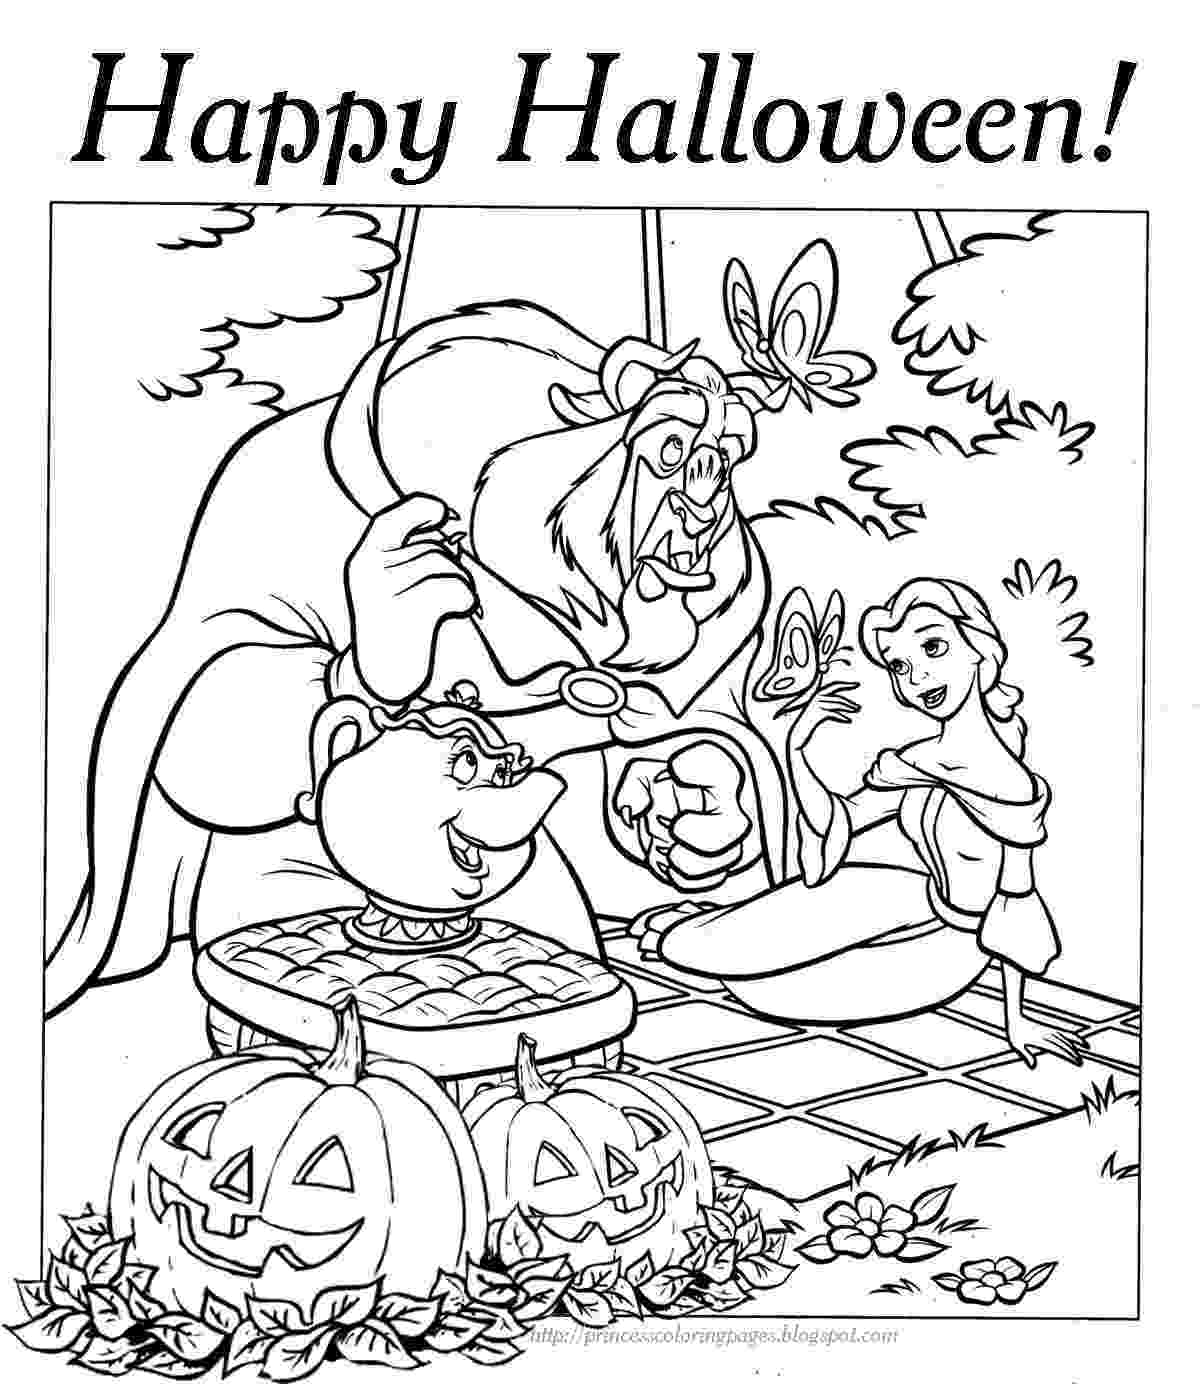 coloring halloween pages princess coloring pages coloring halloween pages